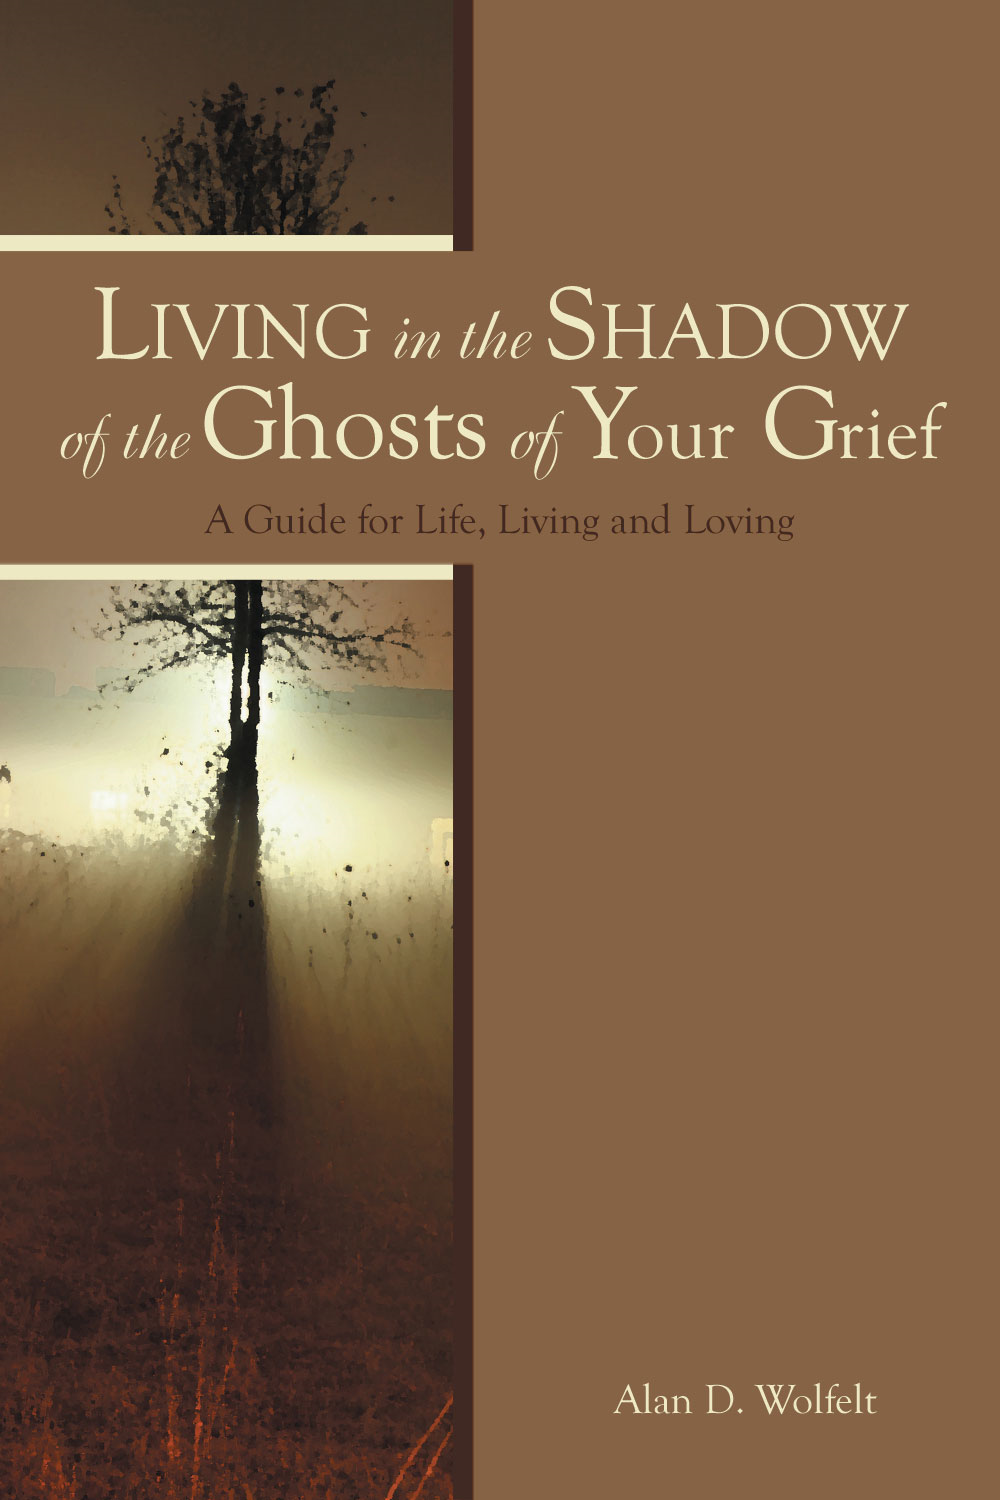 Living in the Shadow of the Ghosts of Your Grief